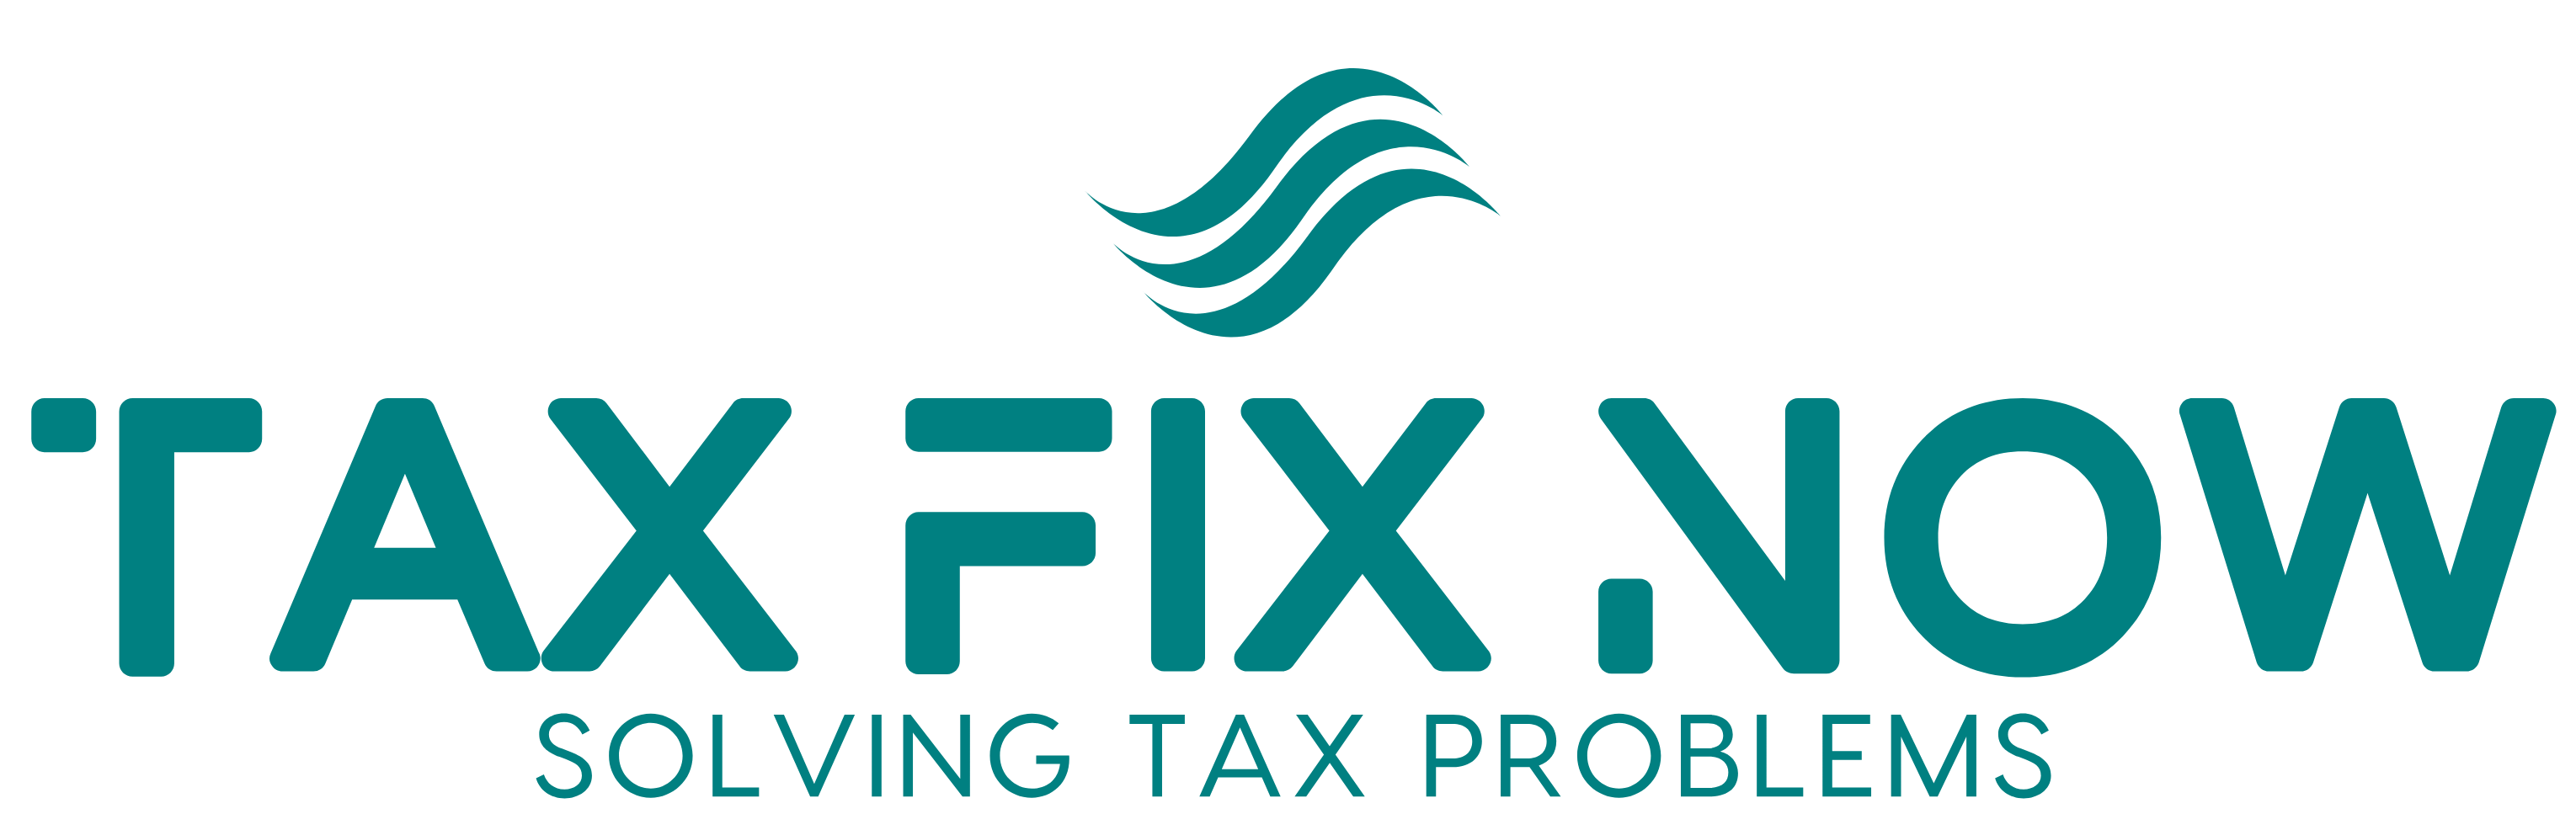 Highland Village, TX Bookkeeping Firm | Business Services Page | Tax Fix Now